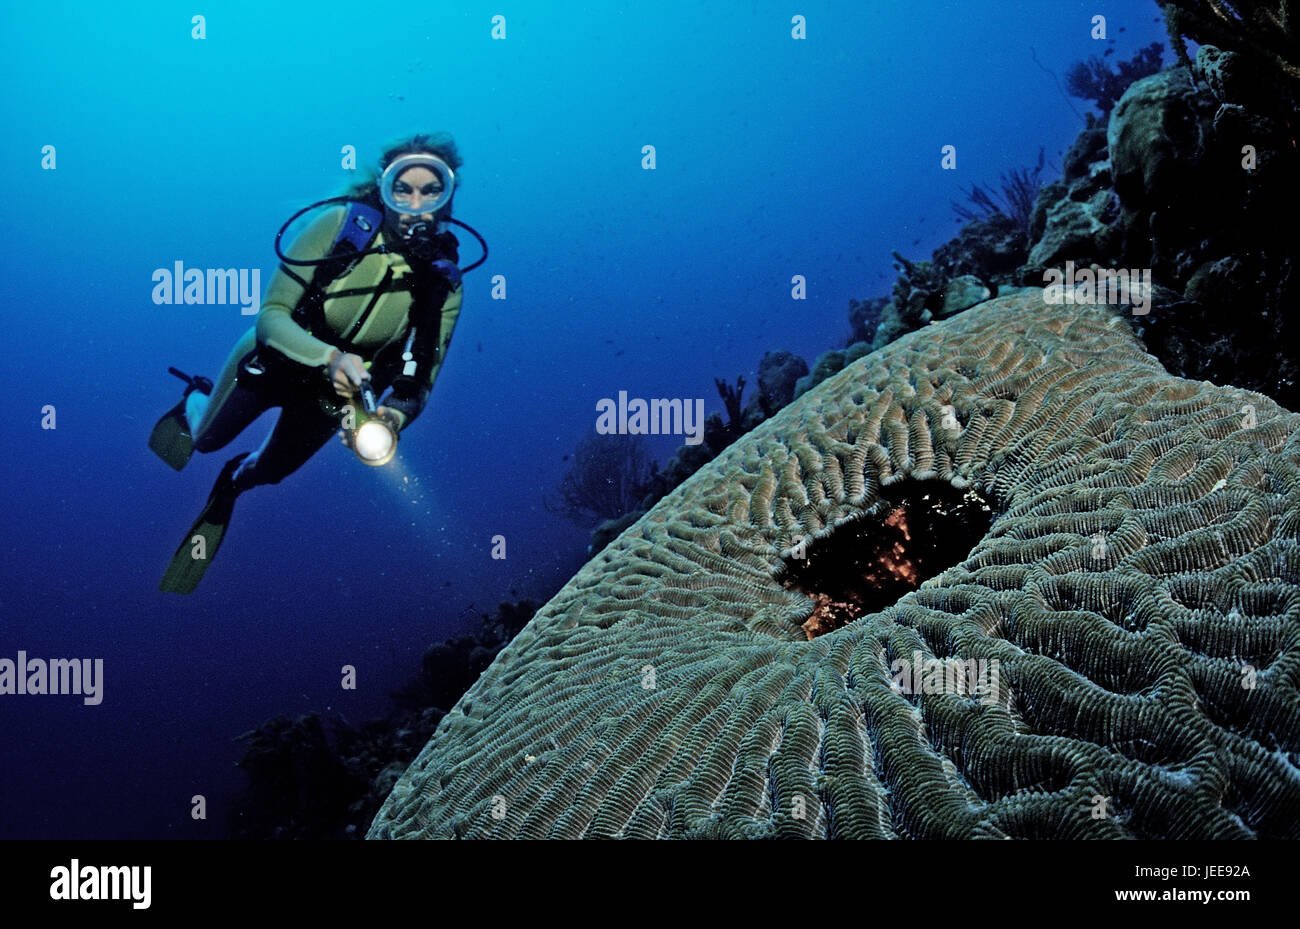 Diver, coral reef, Saint Lucia, the Caribbean, Stock Photo